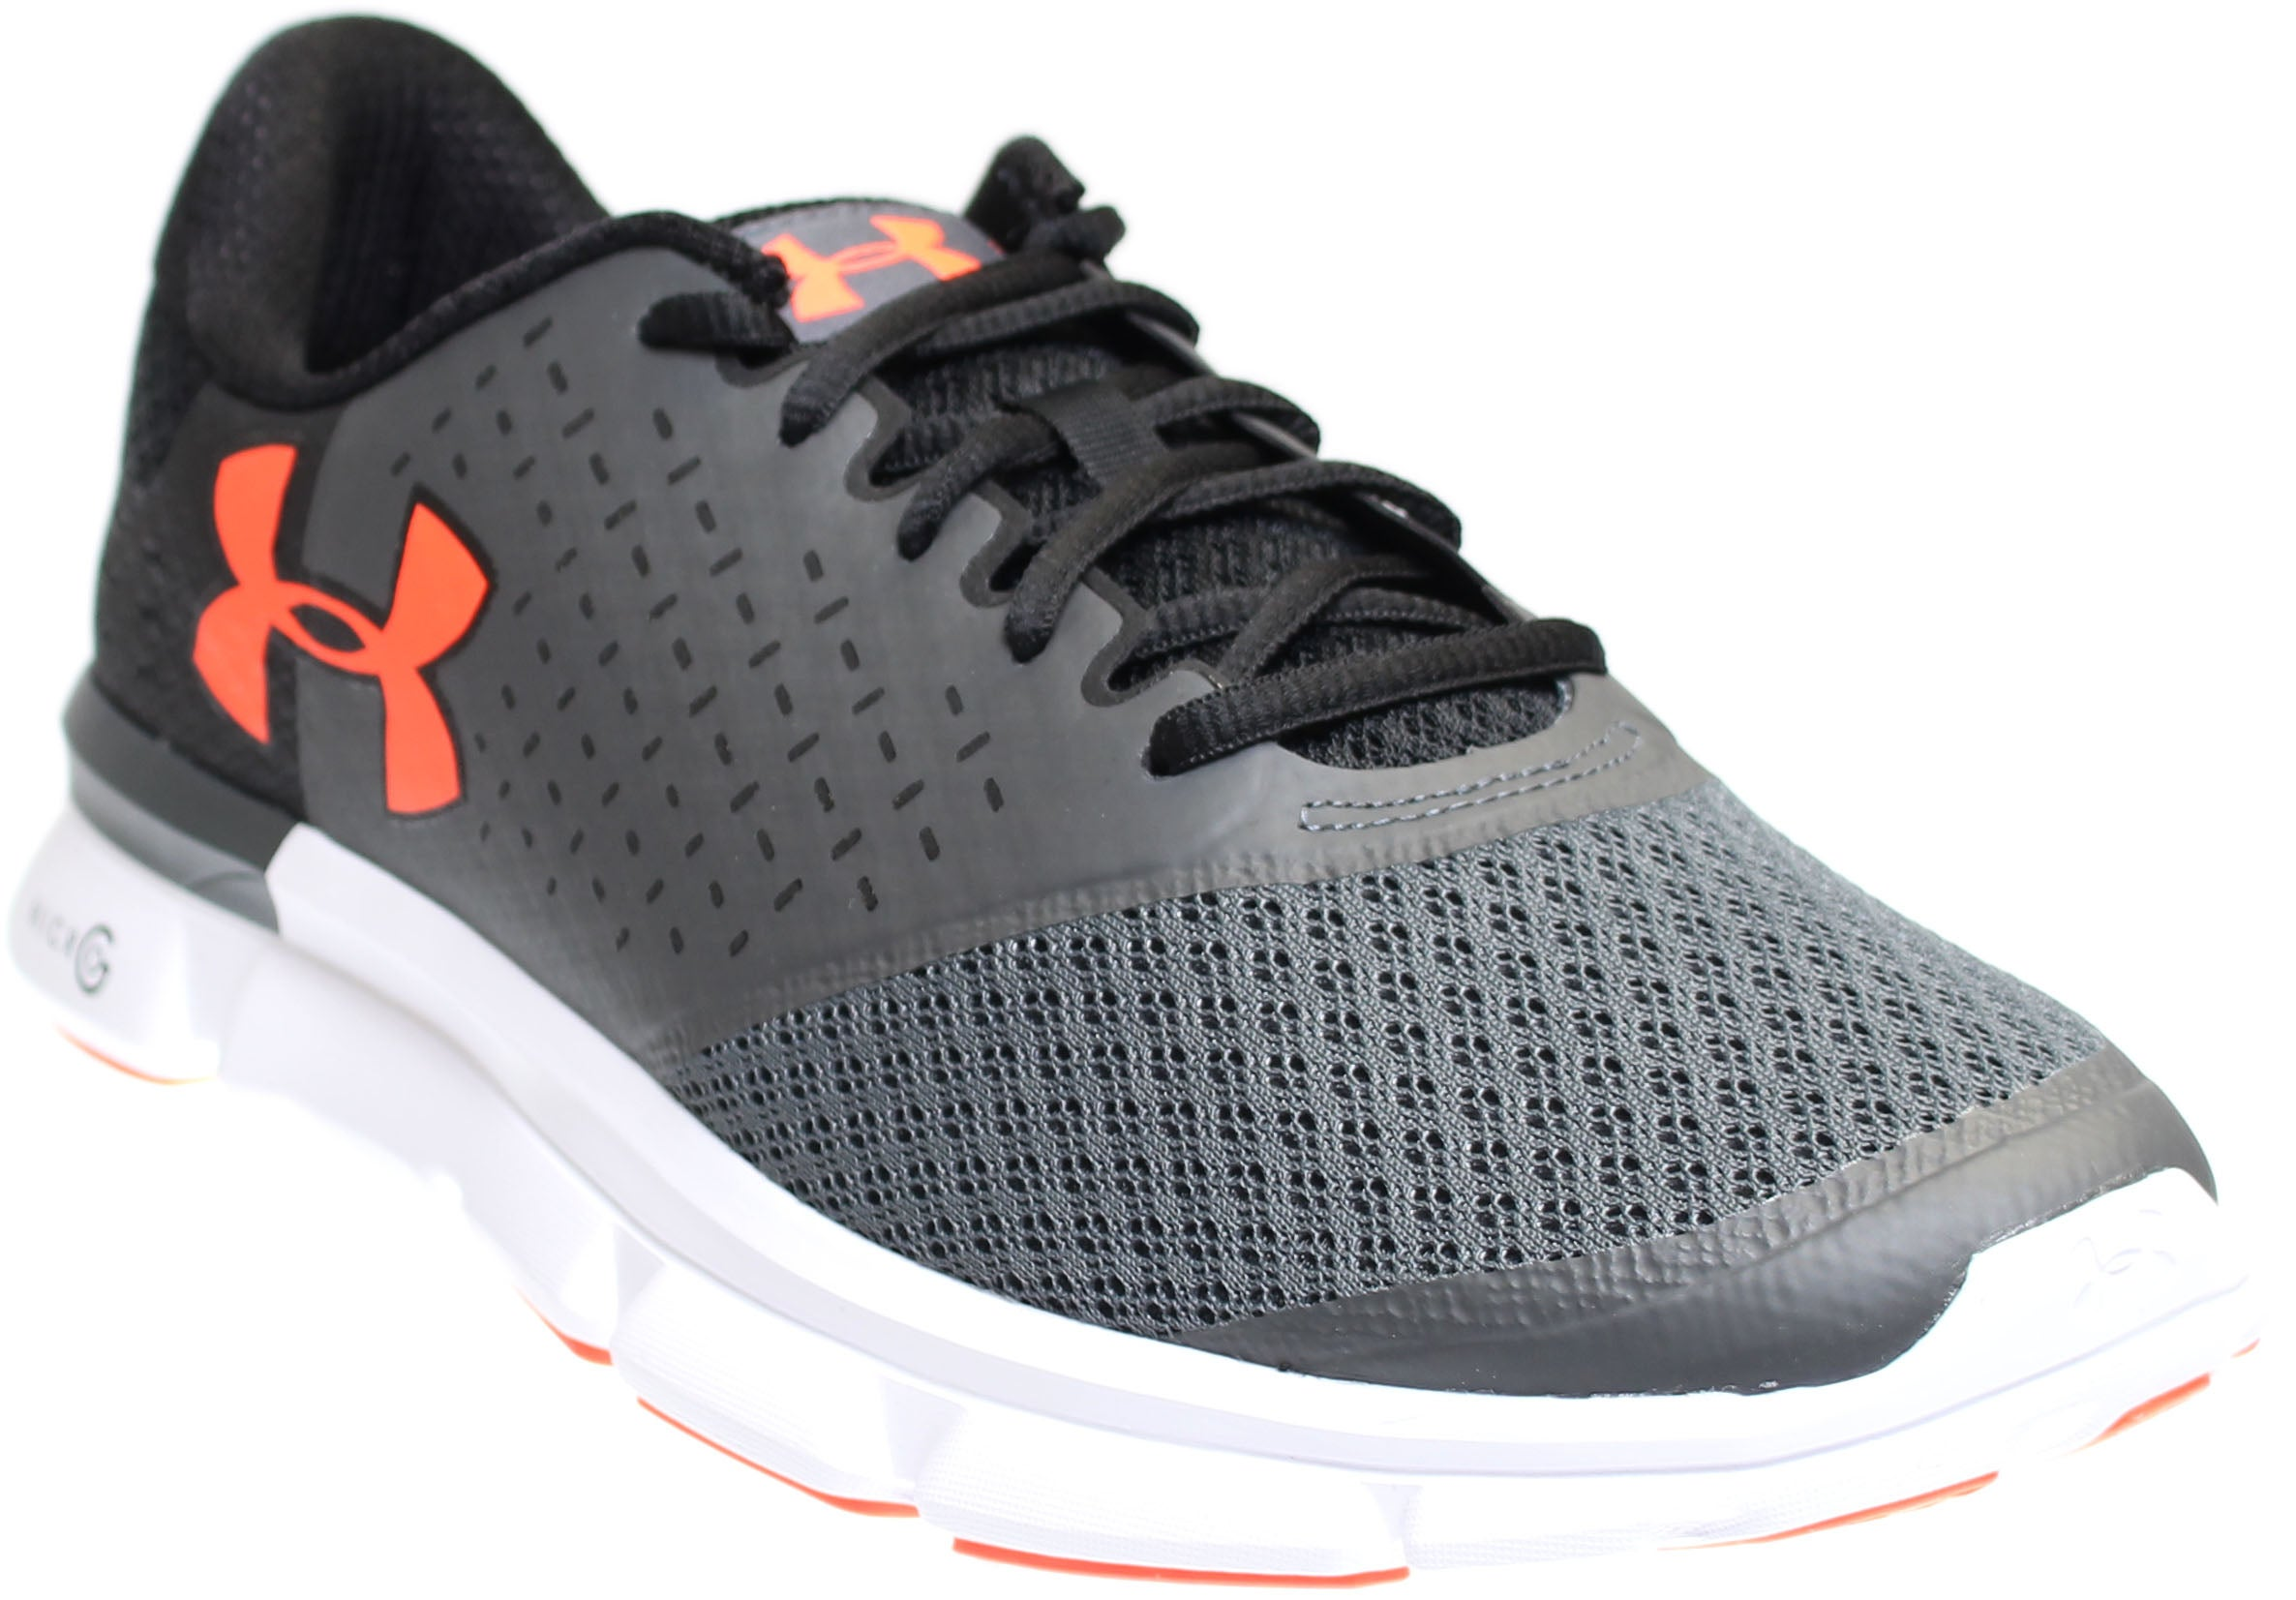 Under Armour Micro G Speed Swift 2 Grey - Mens  - Size